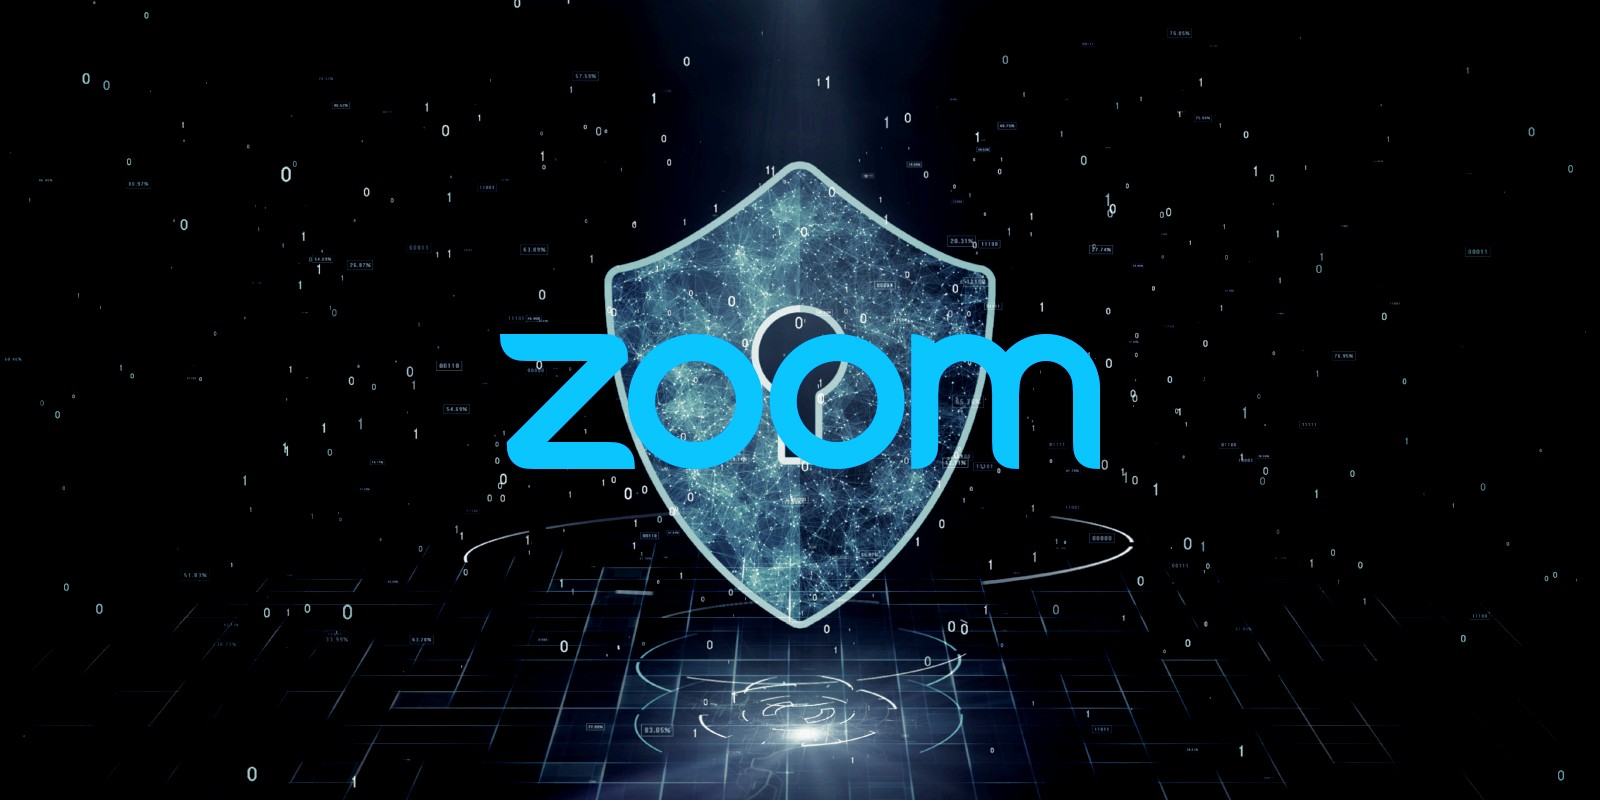 Zoom adds two-factor authentication (2FA) support to all accounts